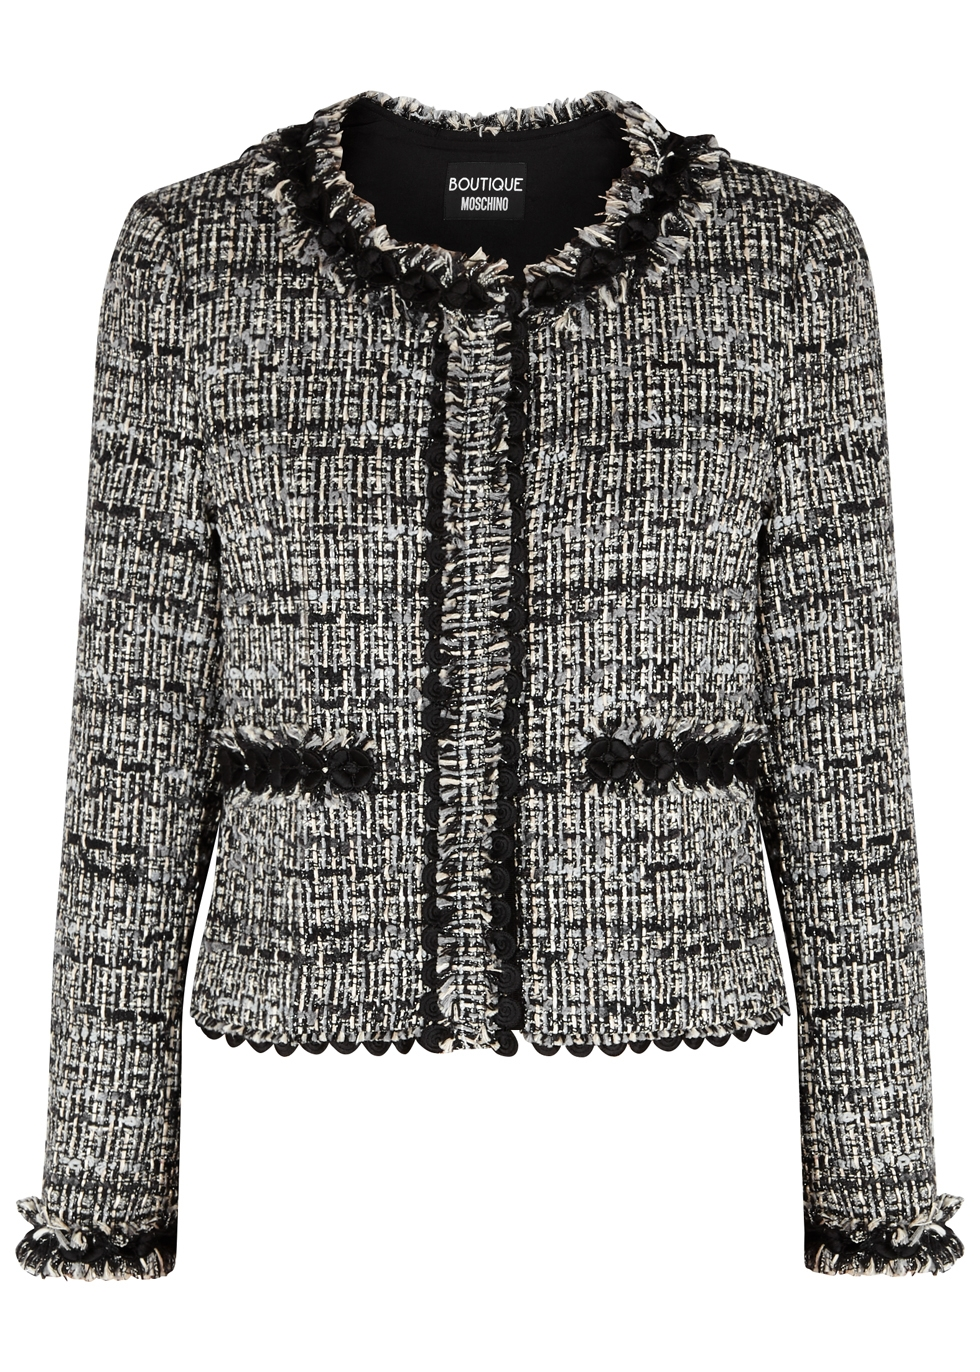 BOUTIQUE MOSCHINO LACE-TRIMMED TWEED JACKET